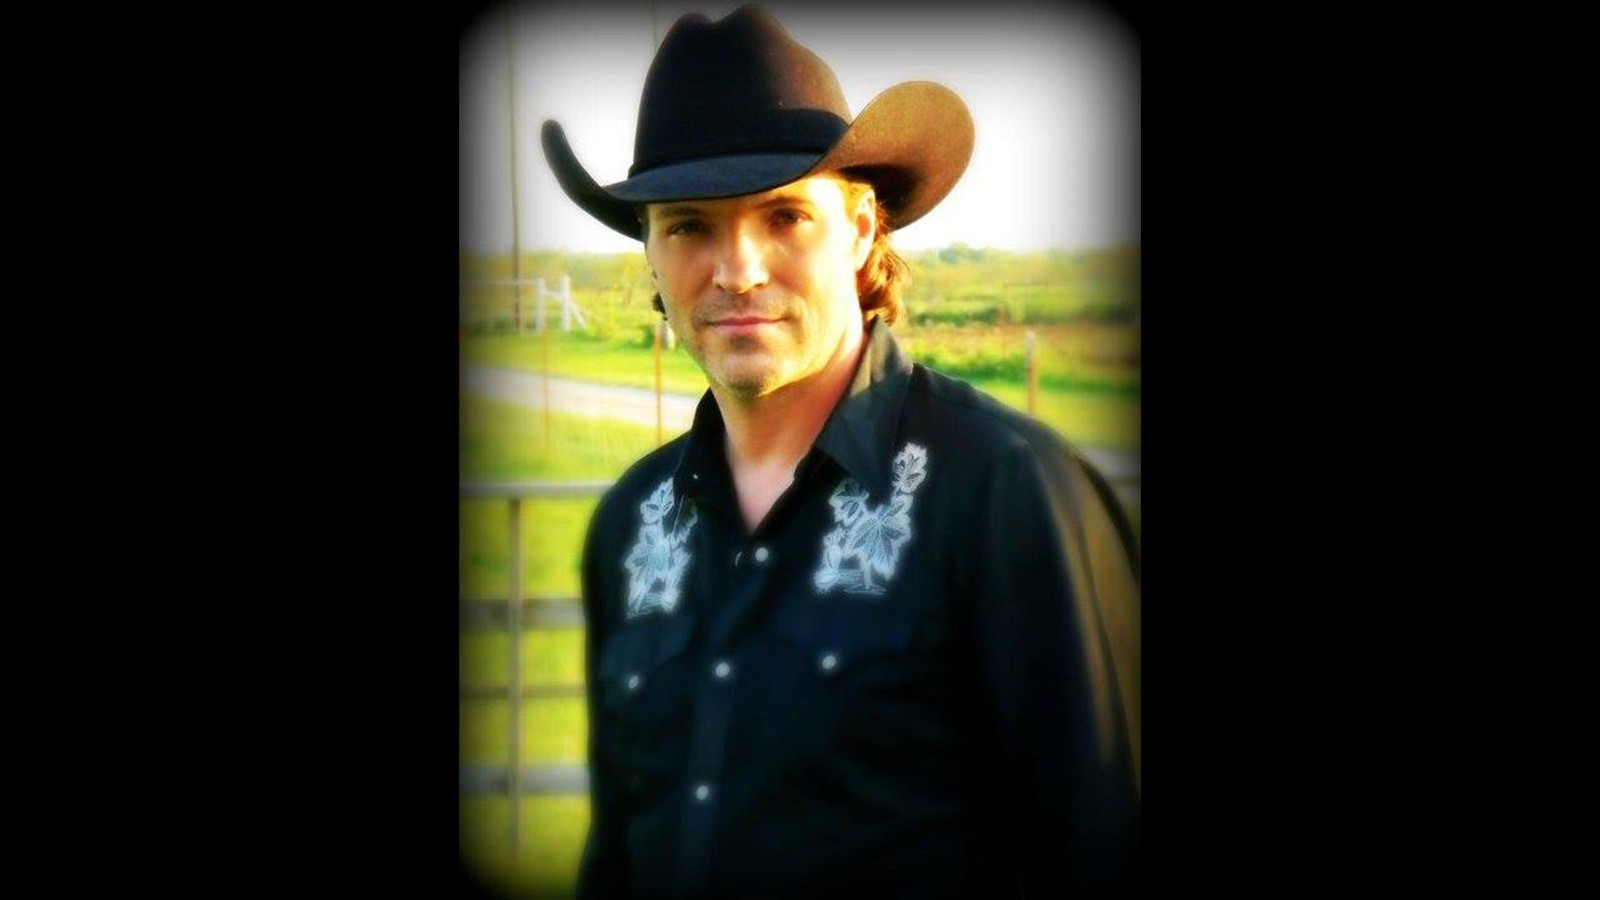 Country singer Darron Norwood found dead at 49.